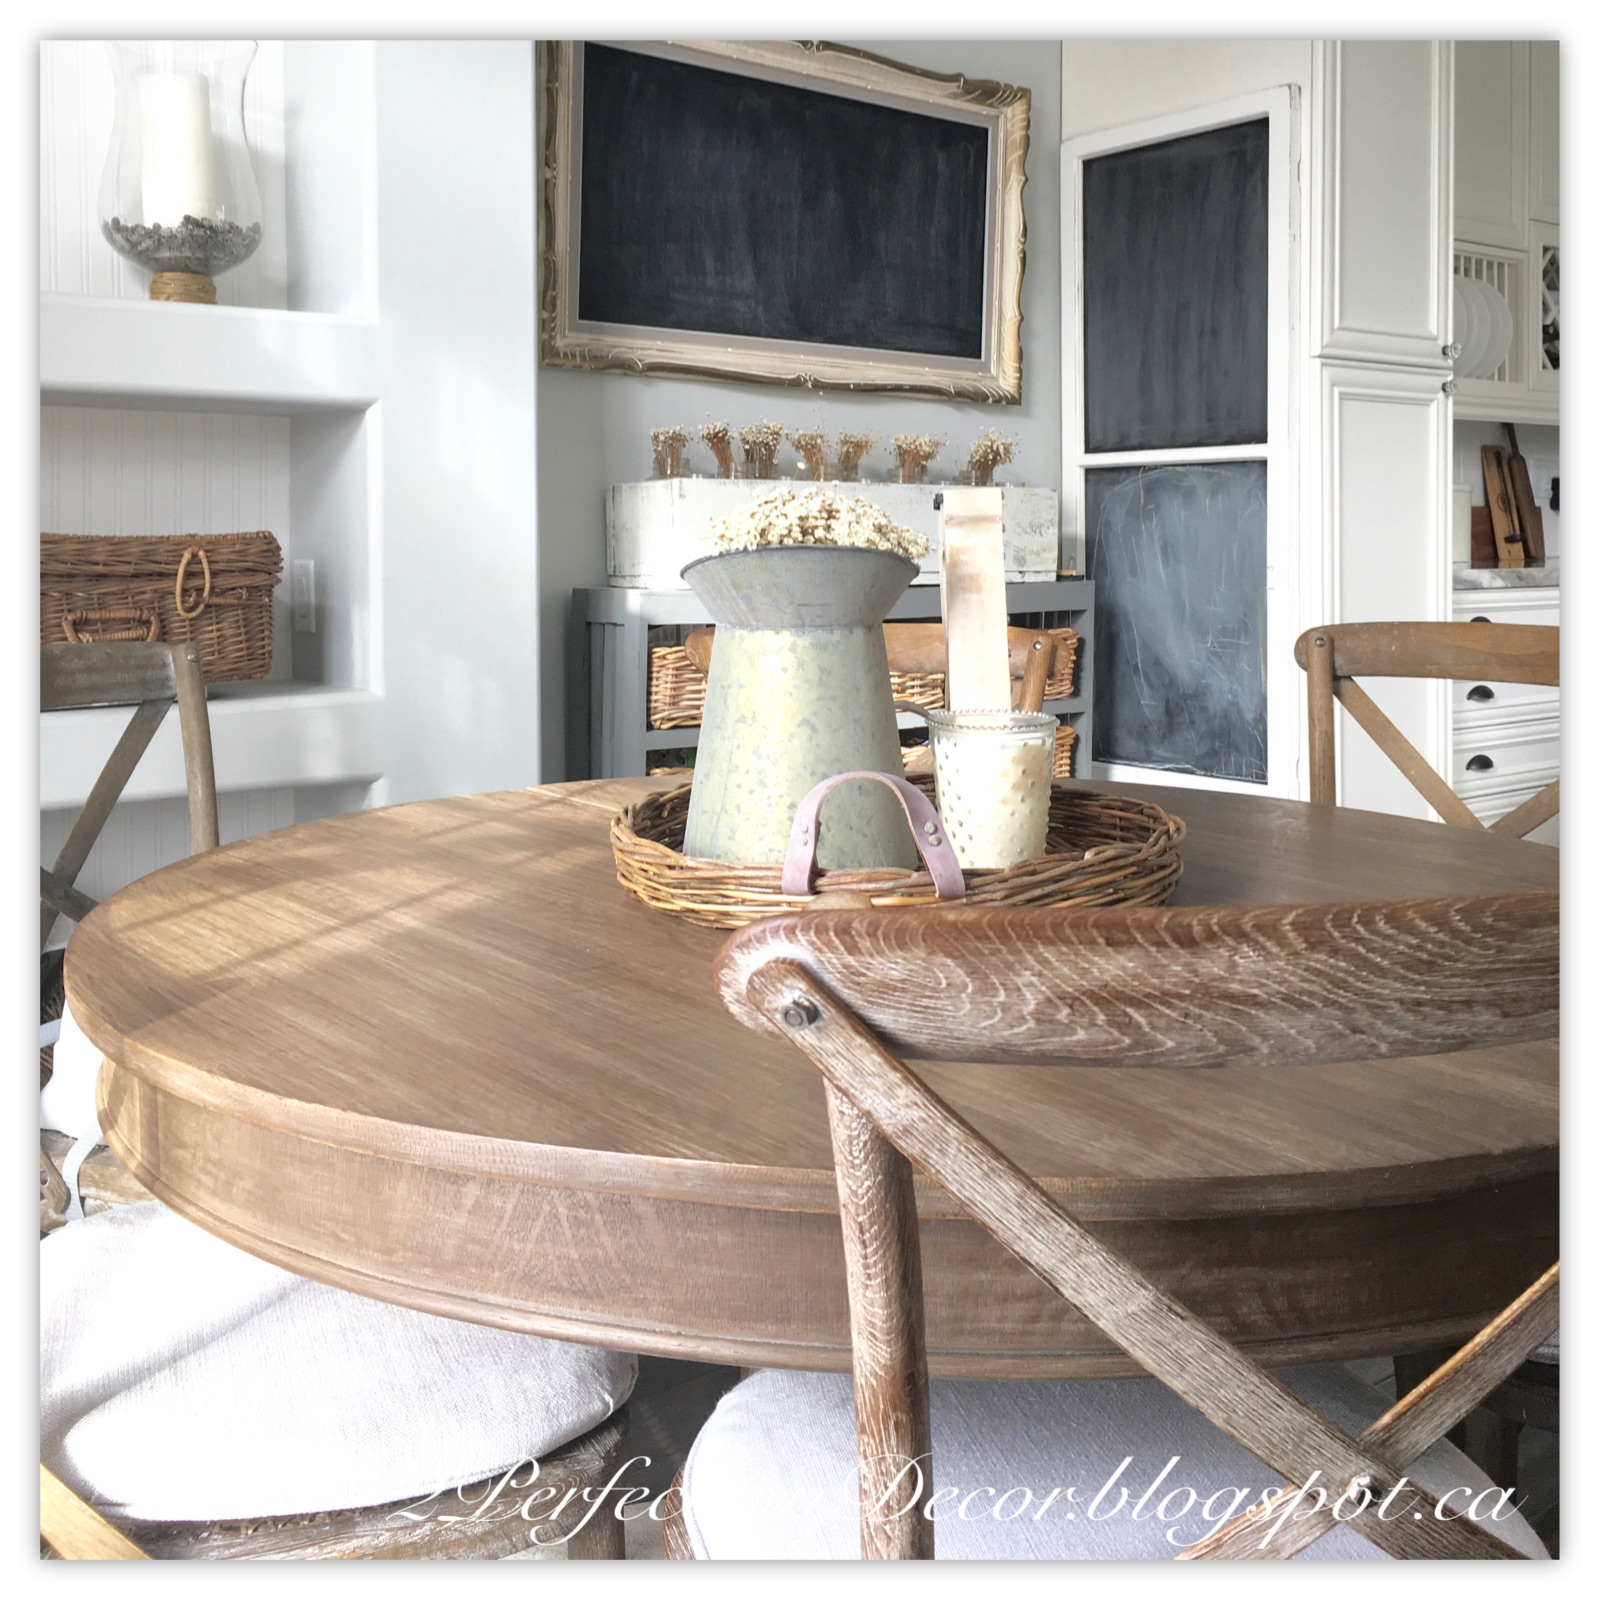 2Perfection Decor: Round Kitchen Table Makeover